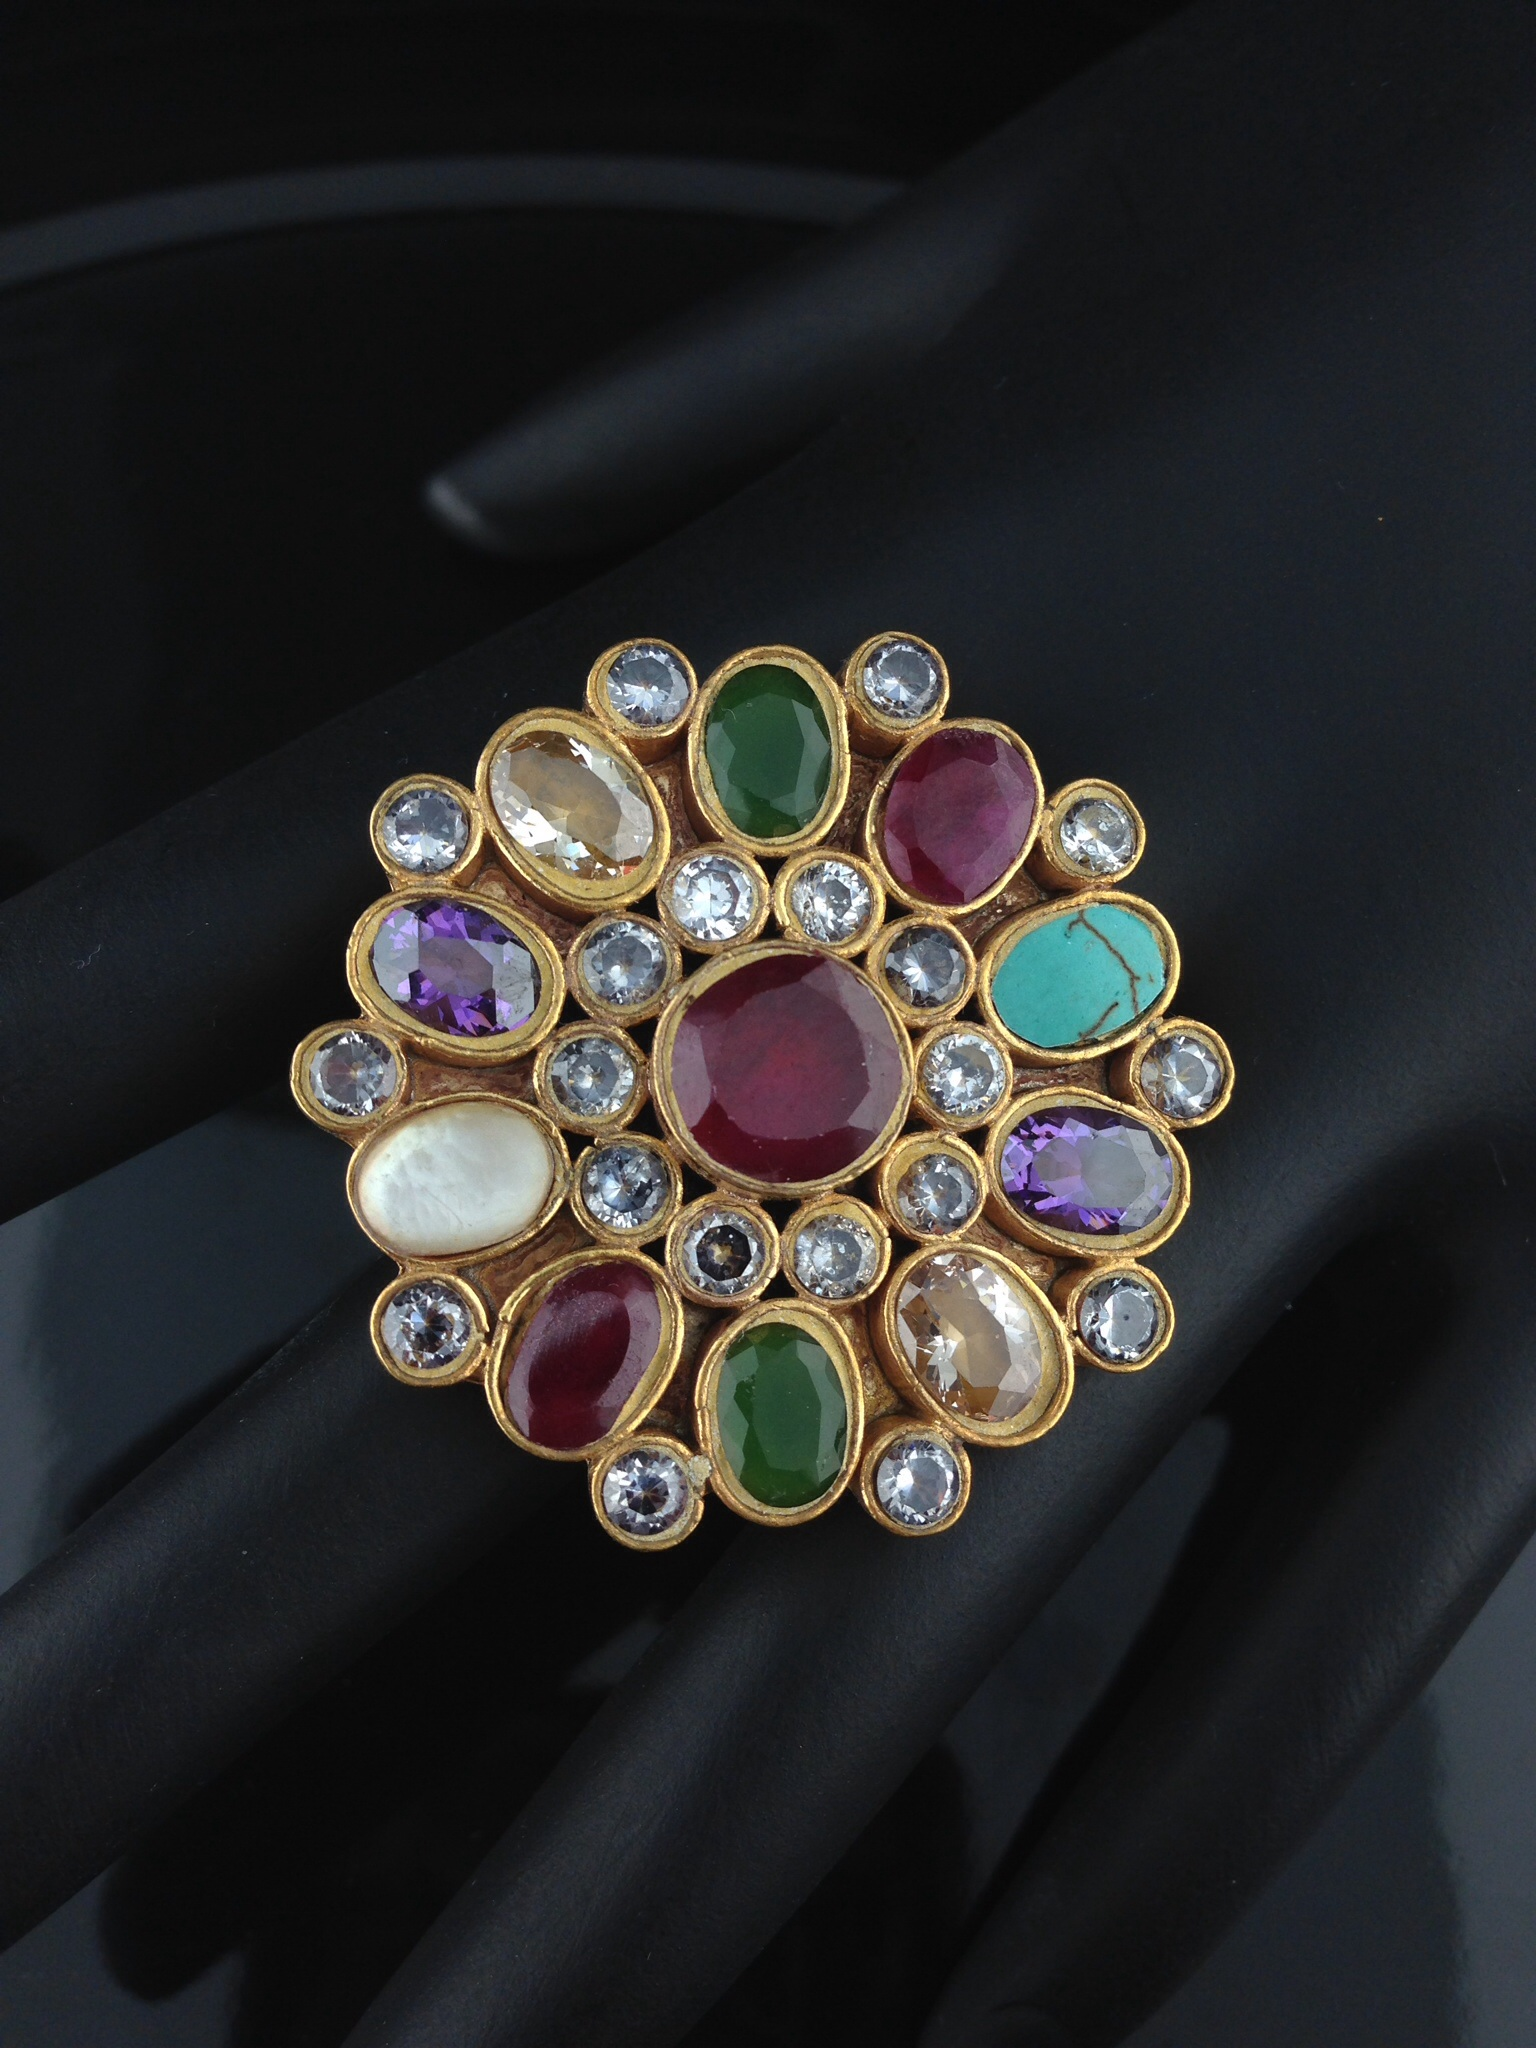 Adjustable Kundan Rings with multicolored Stones.